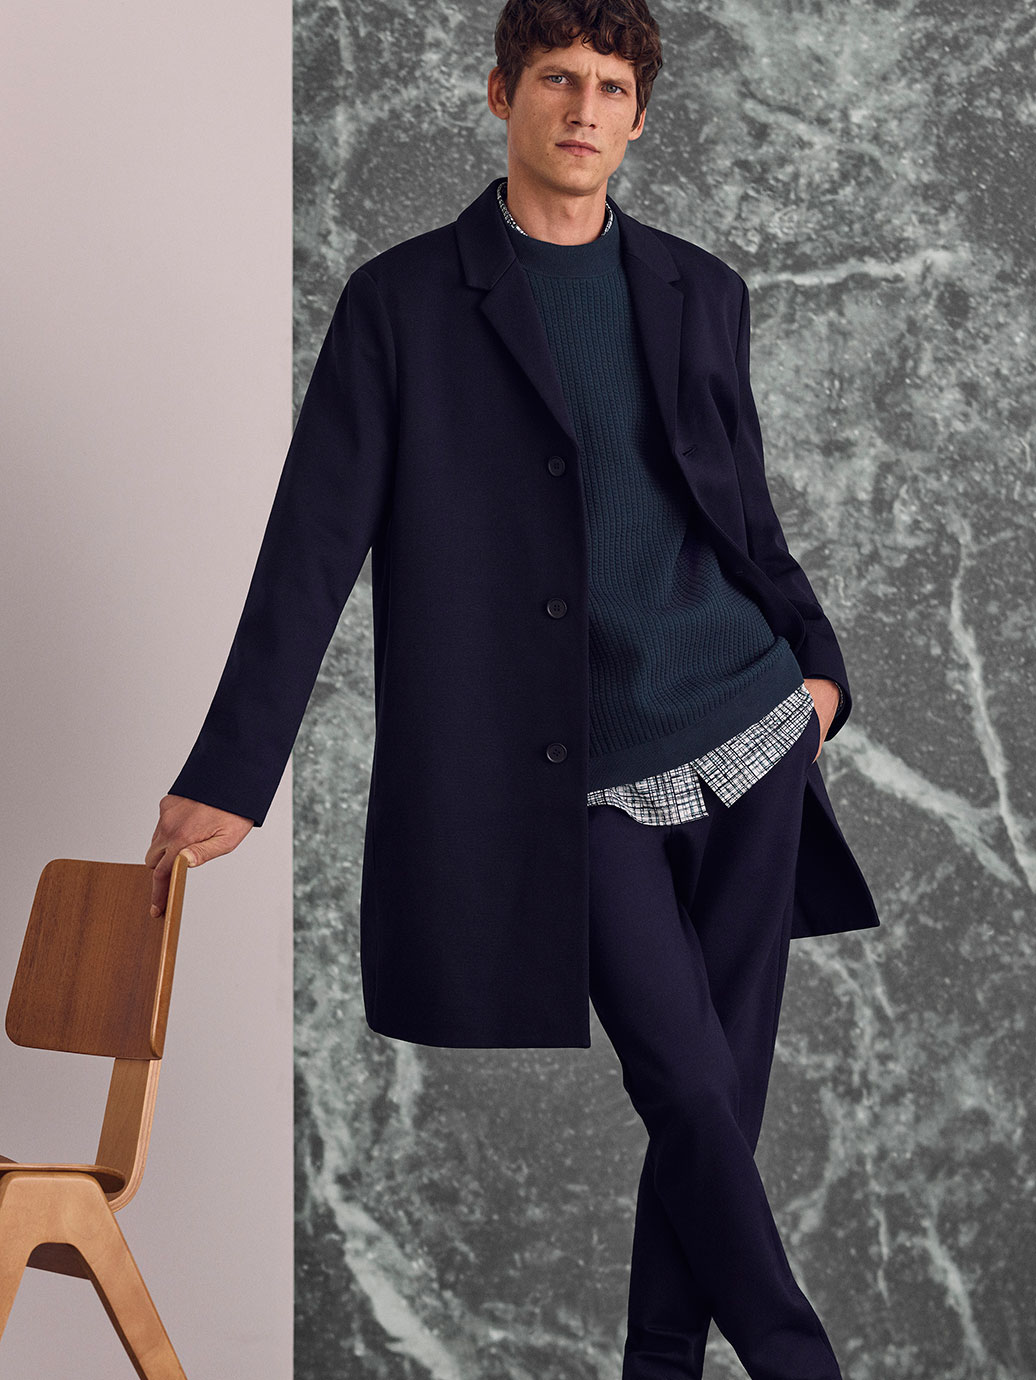 Jersey coat , £115  Raised square knit jumper , £59  Printed cotton shirt , £59  Zip-cuff jersey trousers , £69